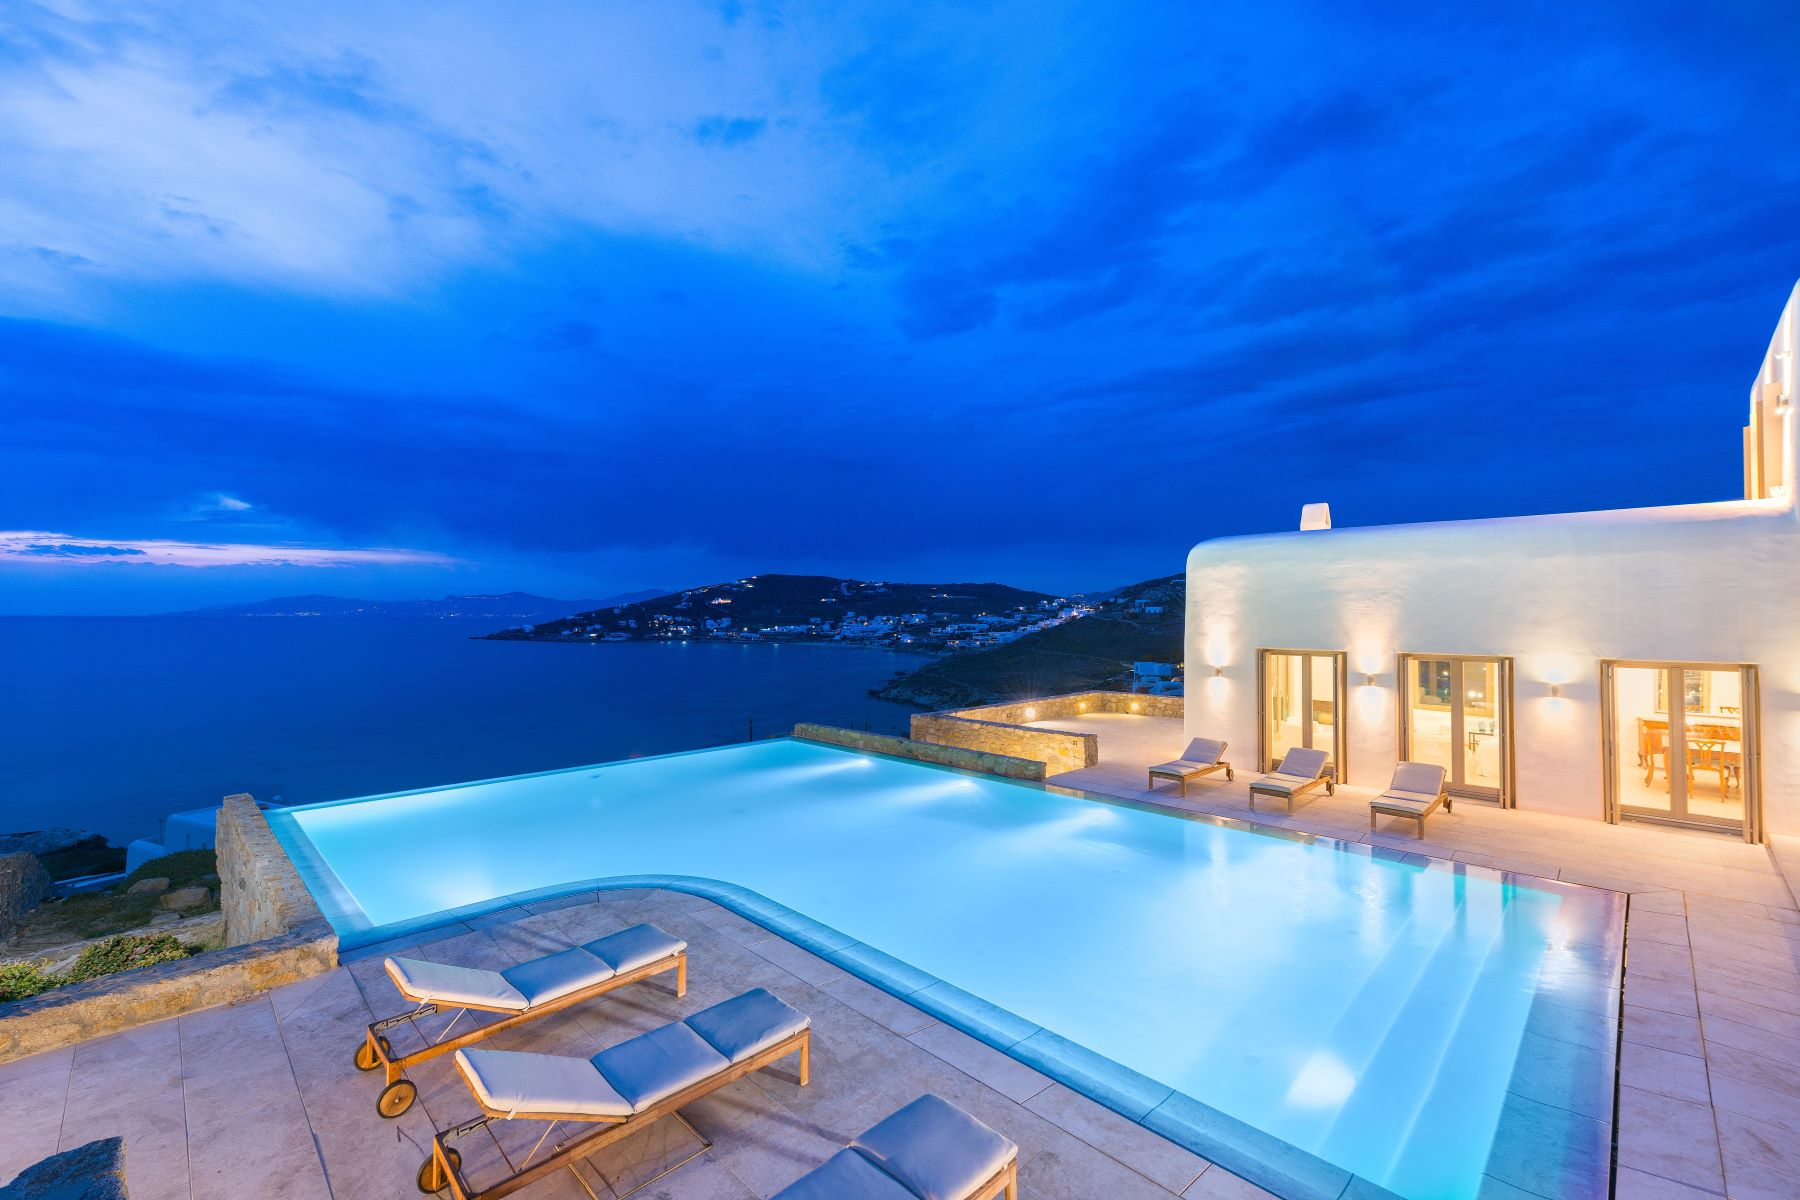 Single Family Home for Sale at Seashore Theory Other Greece, Other Areas In Greece, Greece